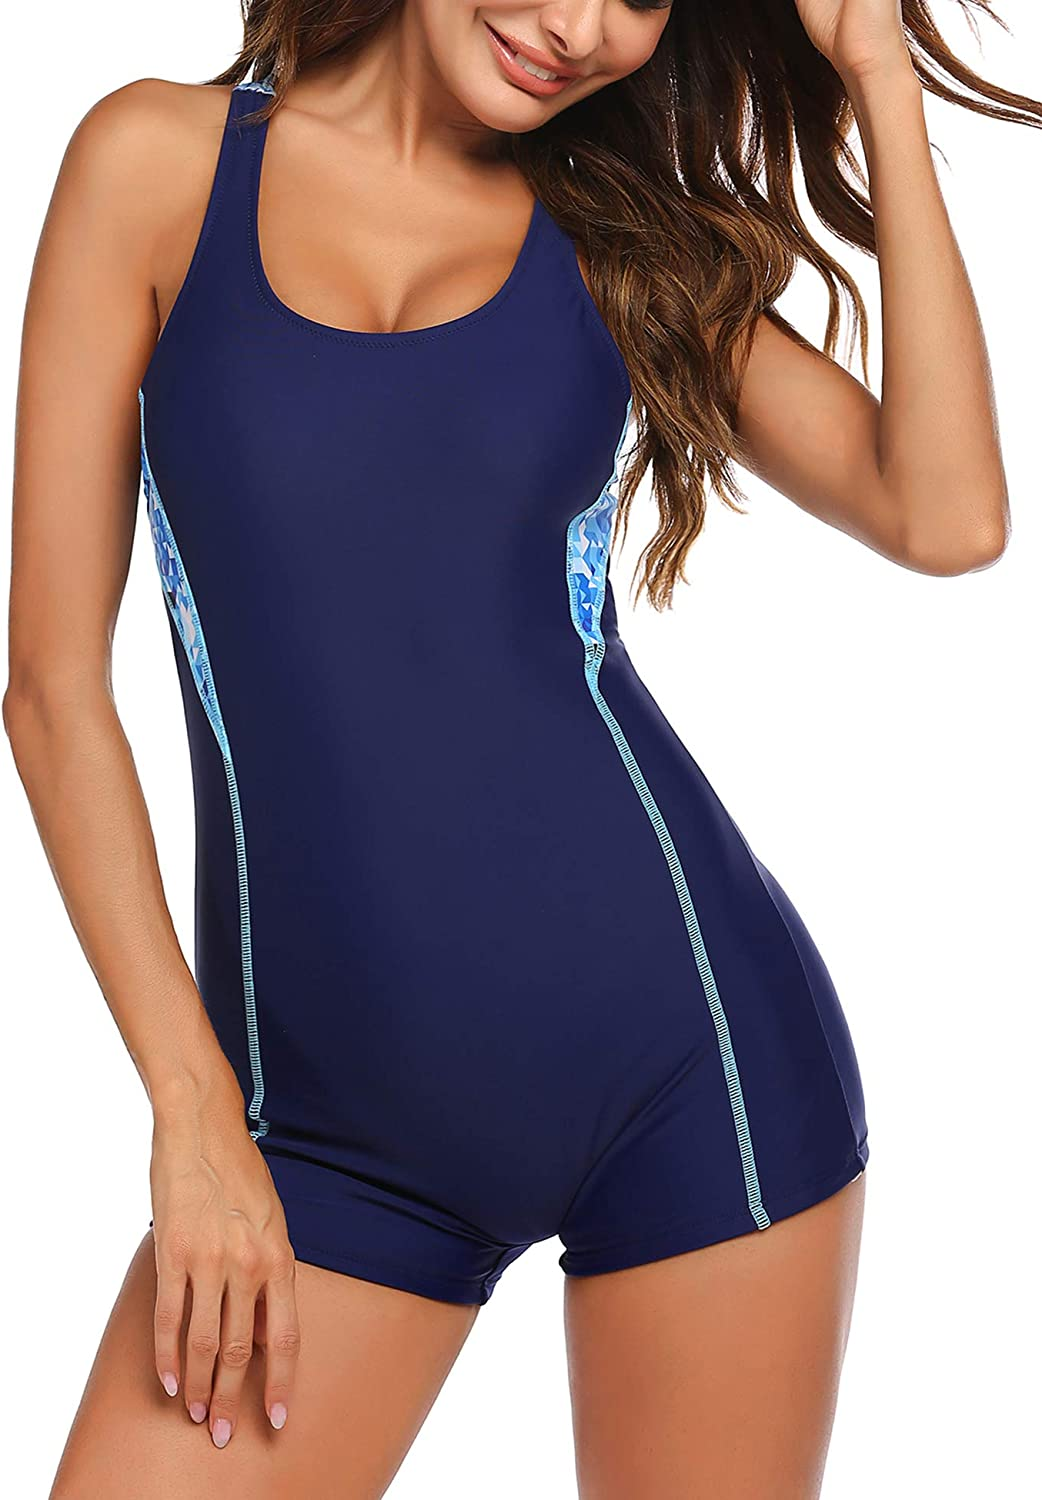 Ekouaer 5 ☆ very popular One Piece Swimsuits for Swimwear Women Max 46% OFF Training Athletic